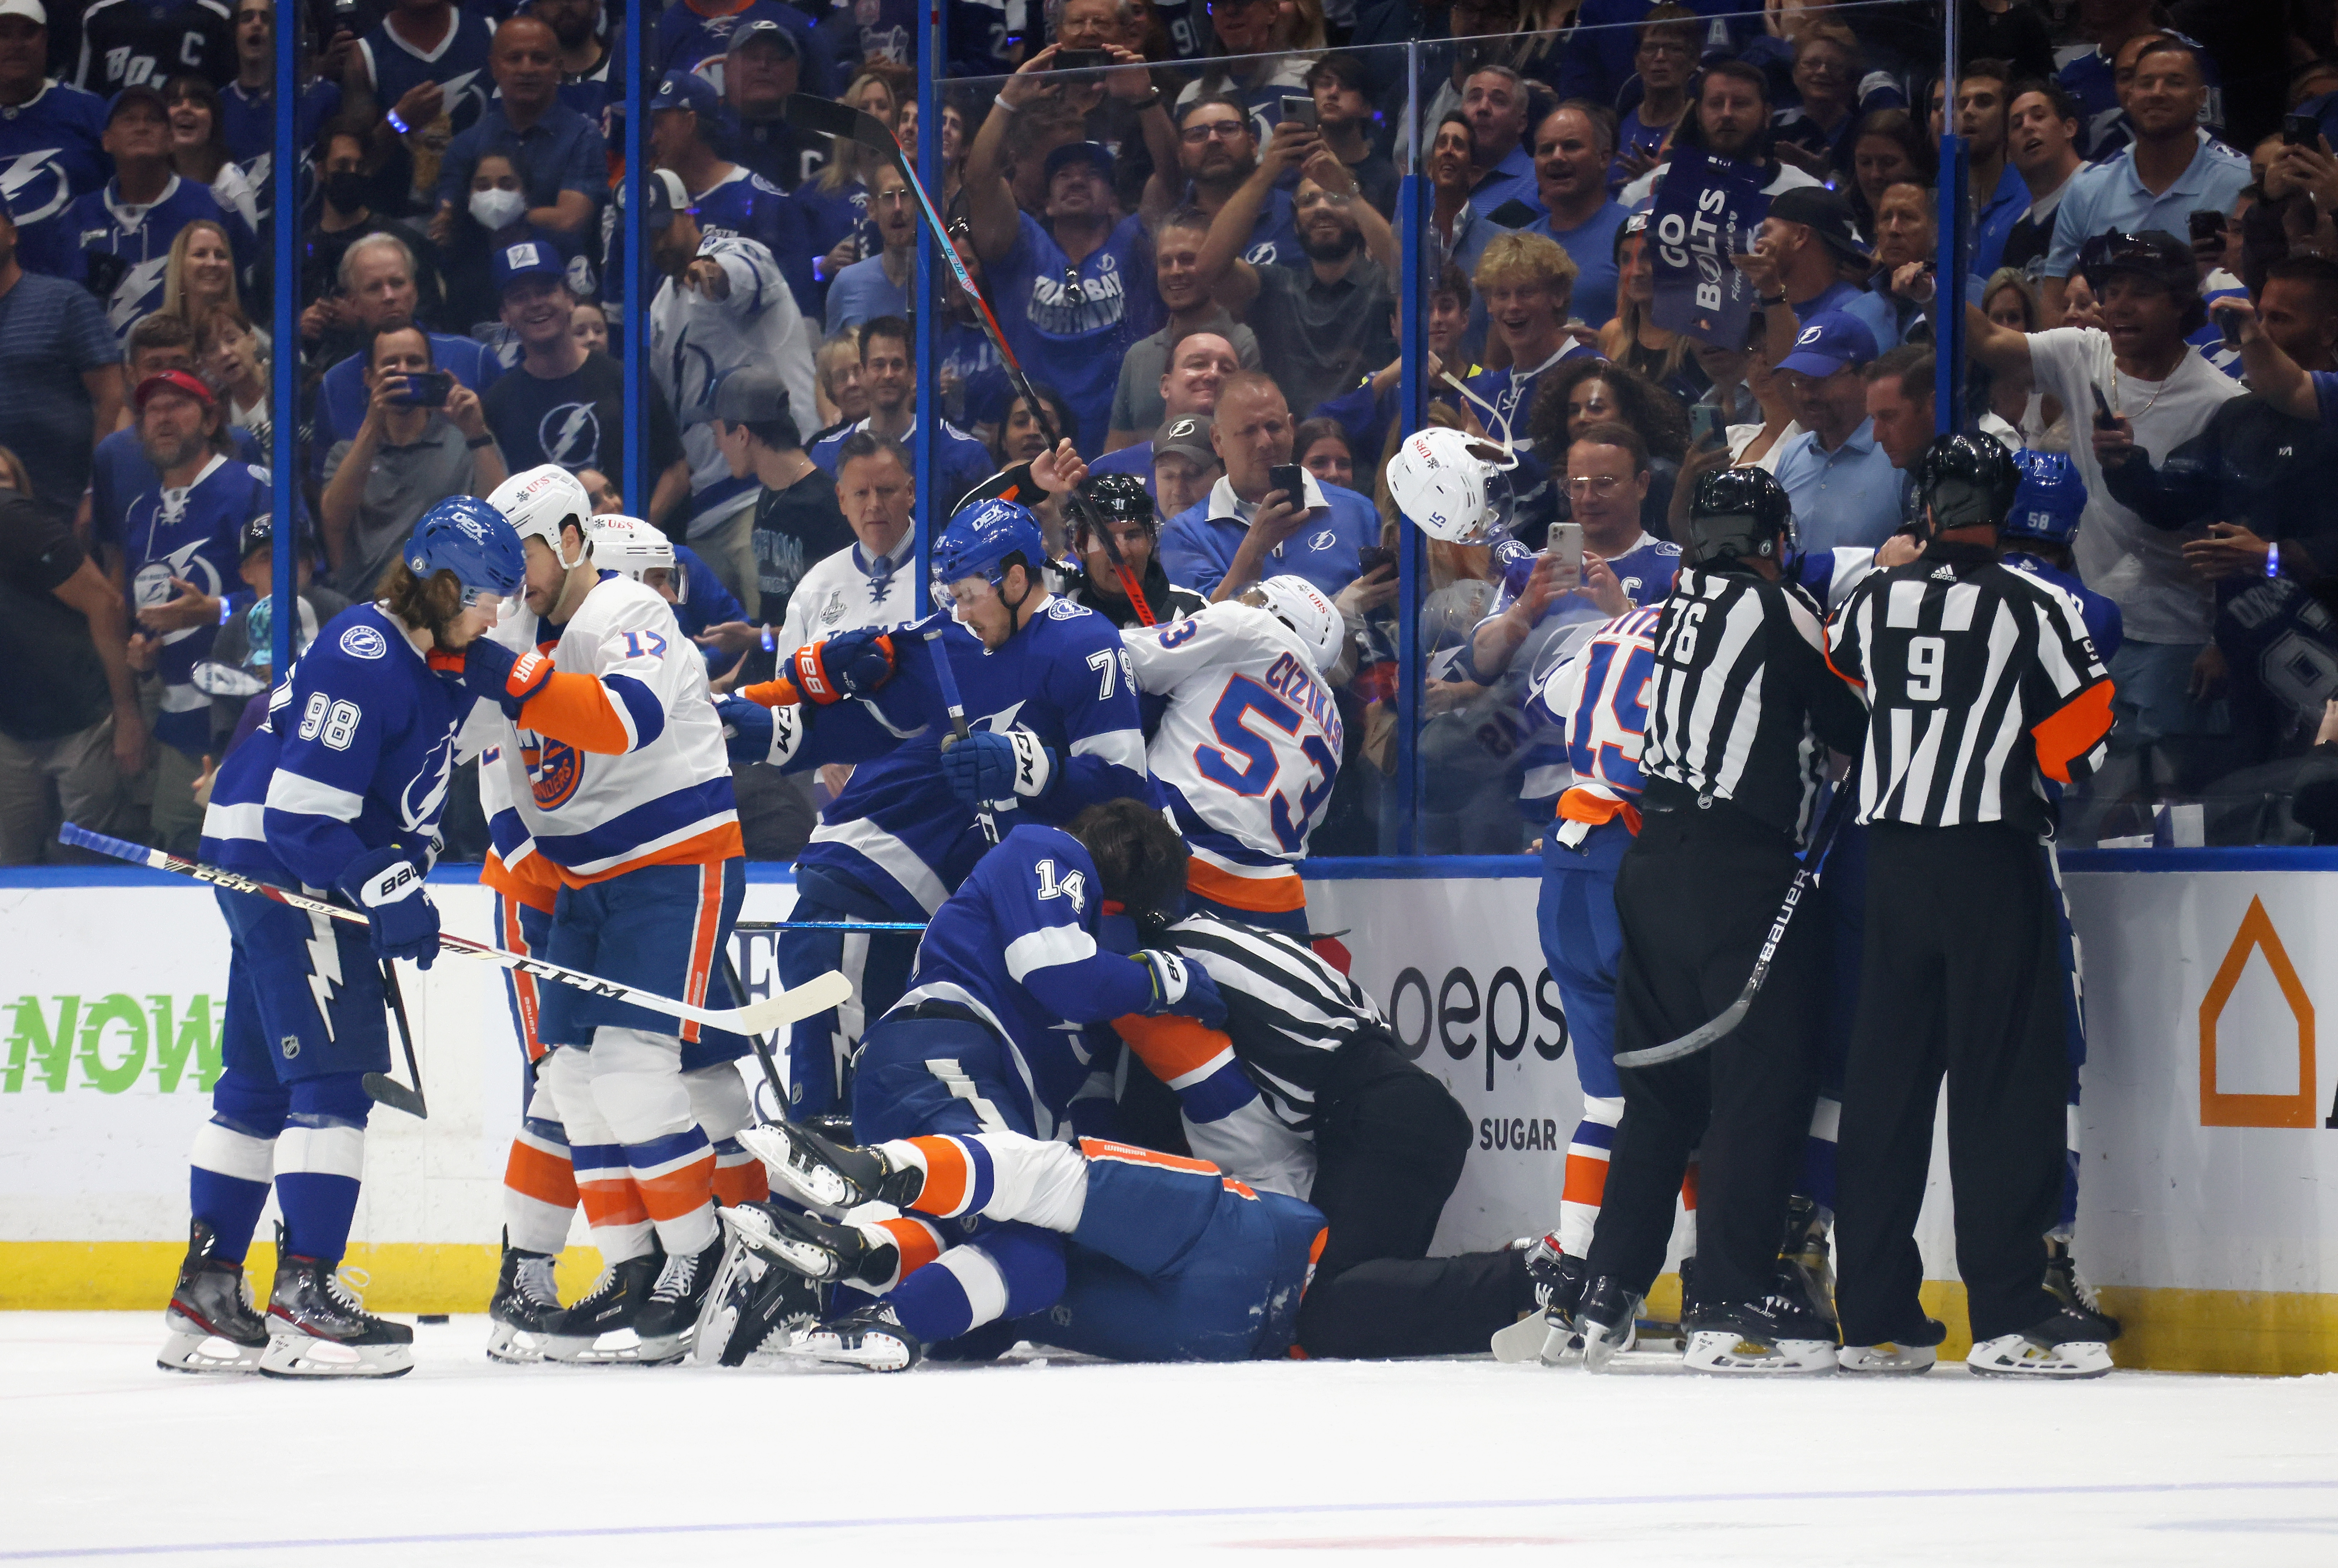 The Tampa Bay Lightning and the New York Islanders battle in Game Two of the Stanley Cup Semifinals during the 2021 Stanley Cup Playoffs at the Amalie Arena on June 15, 2021 in Tampa, Florida.